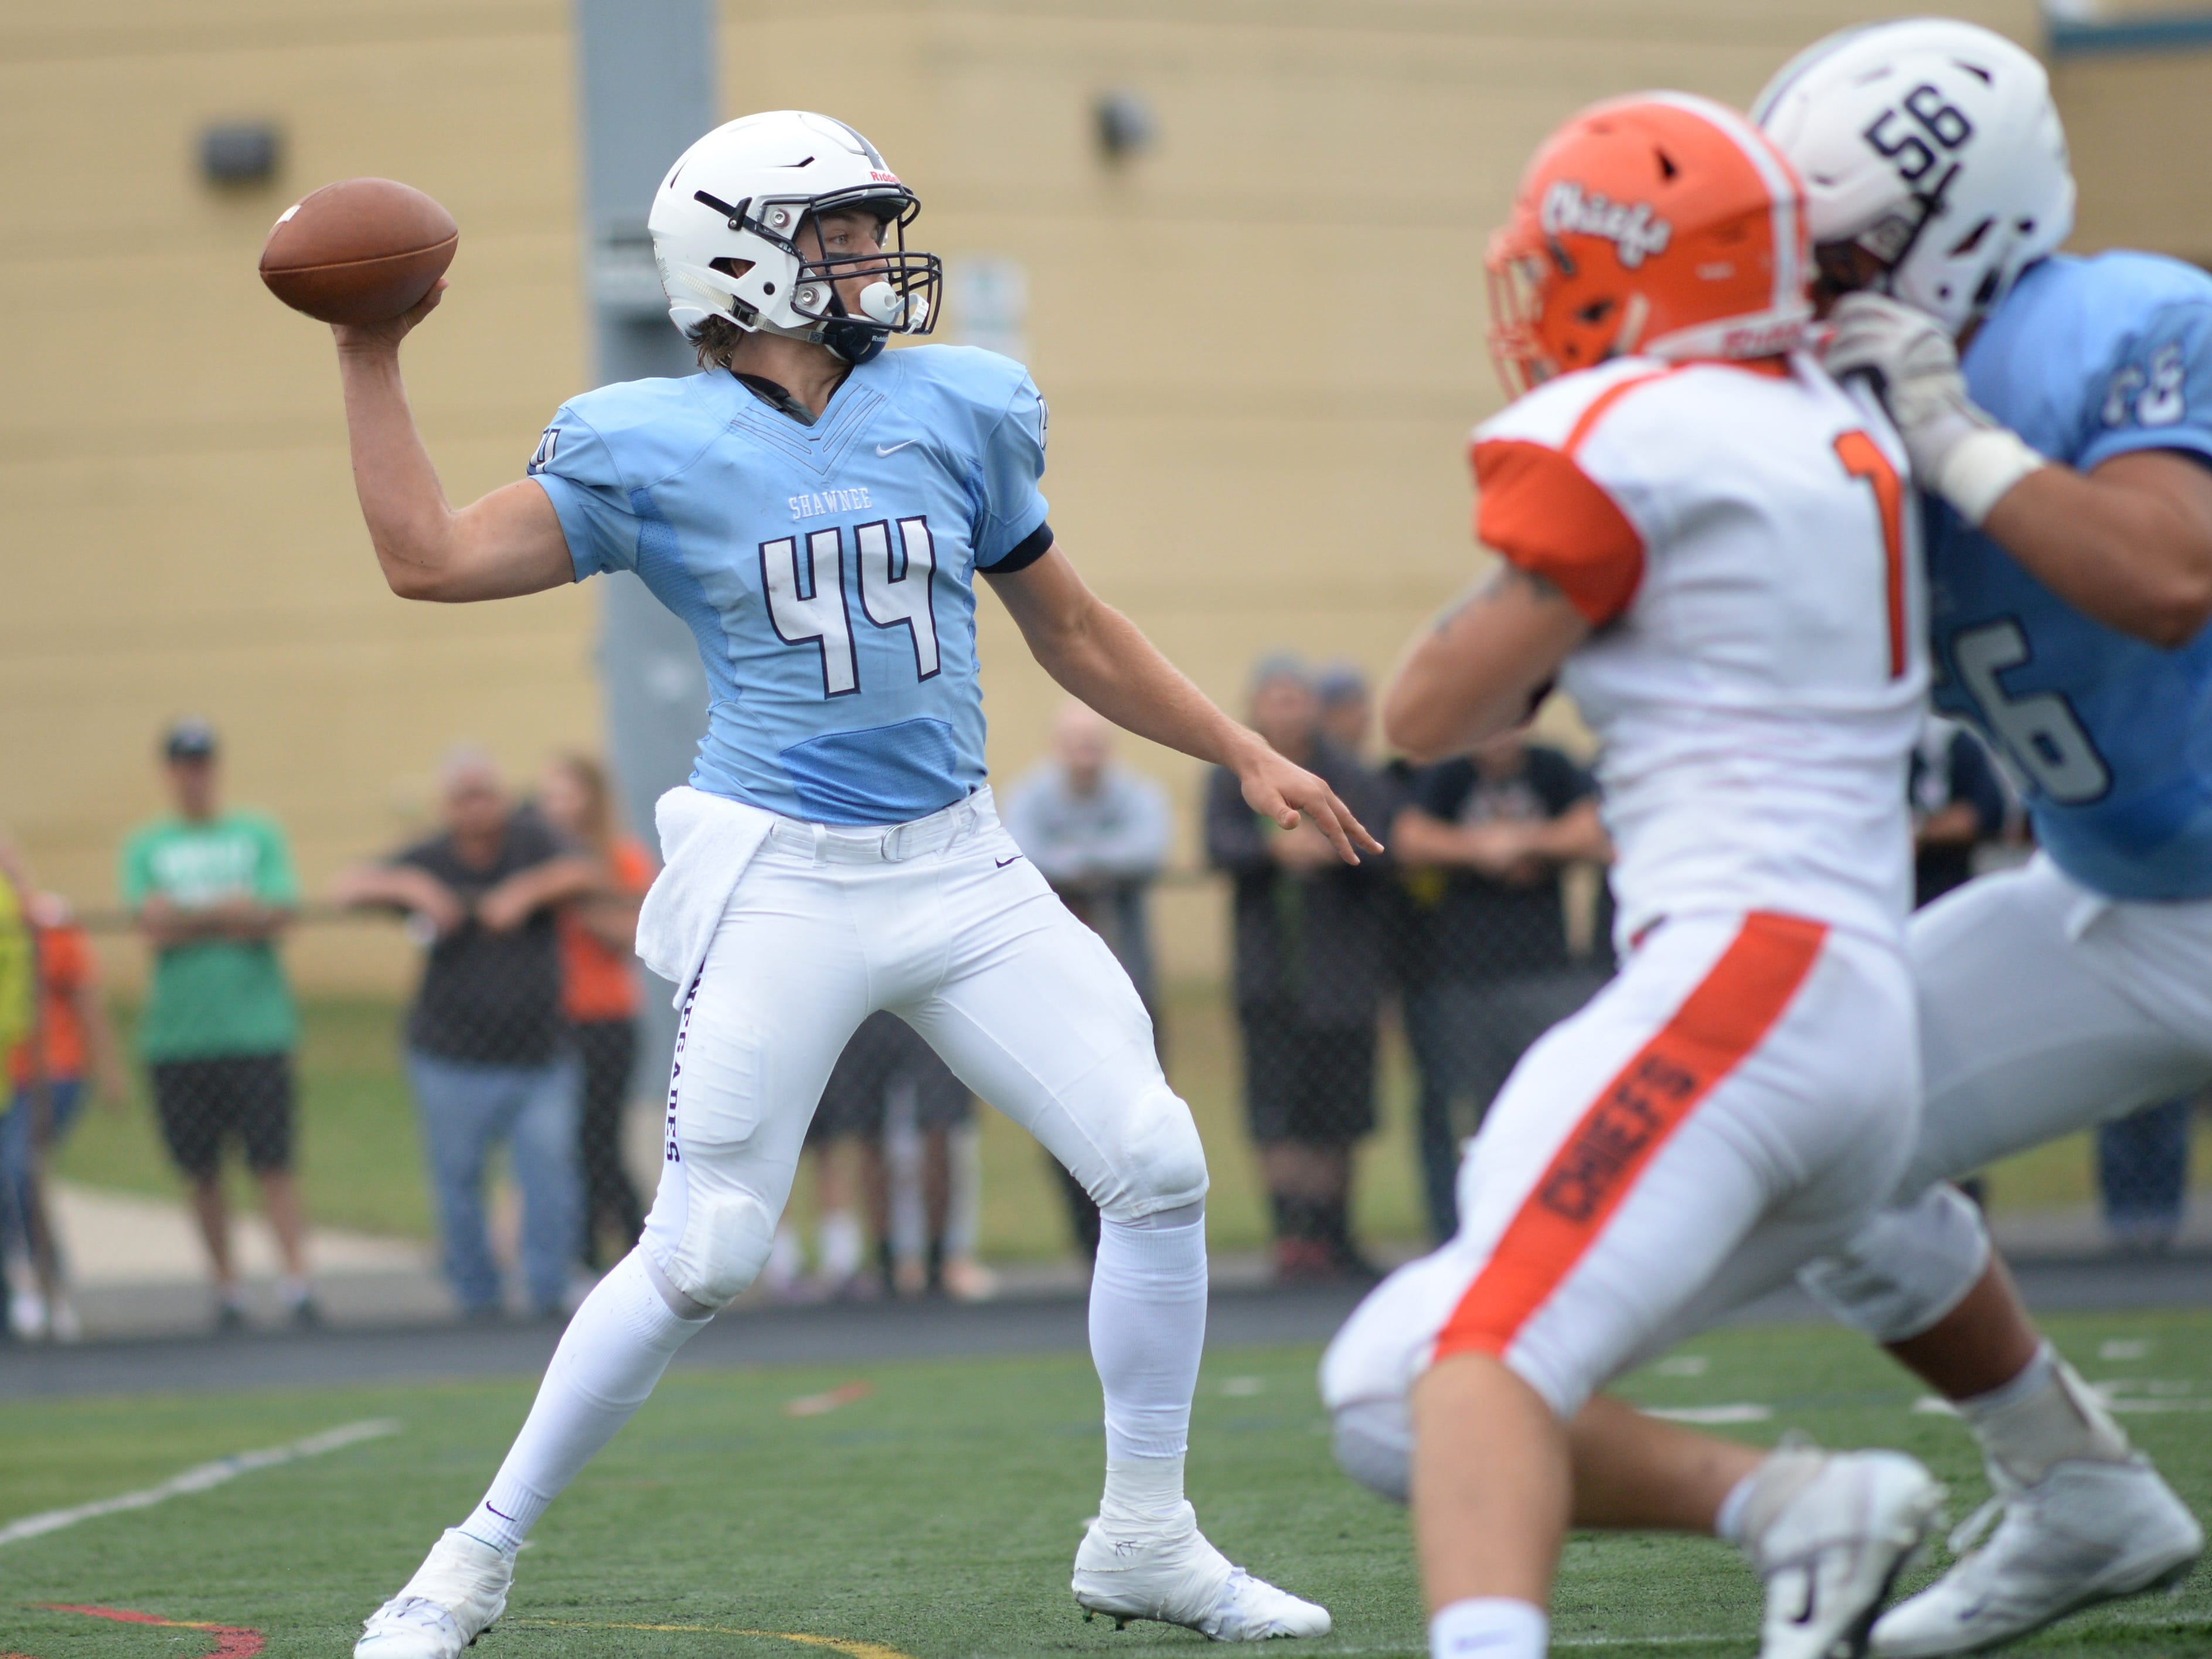 Shawnee's quarterback Joe Dalsey throws a pass during Saturday's football game against Cherokee at Shawnee High School,  Sept. 8, 2018.